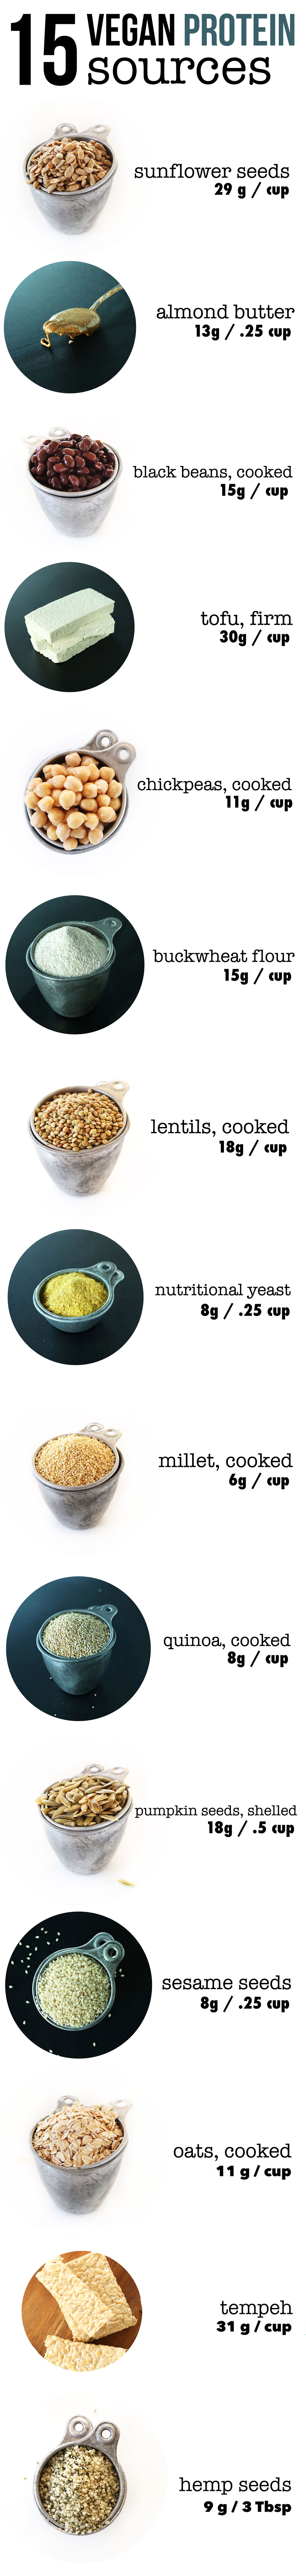 Graphic of 16 vegan protein sources, including chickpeas, tofu, nutritional yeast, and more